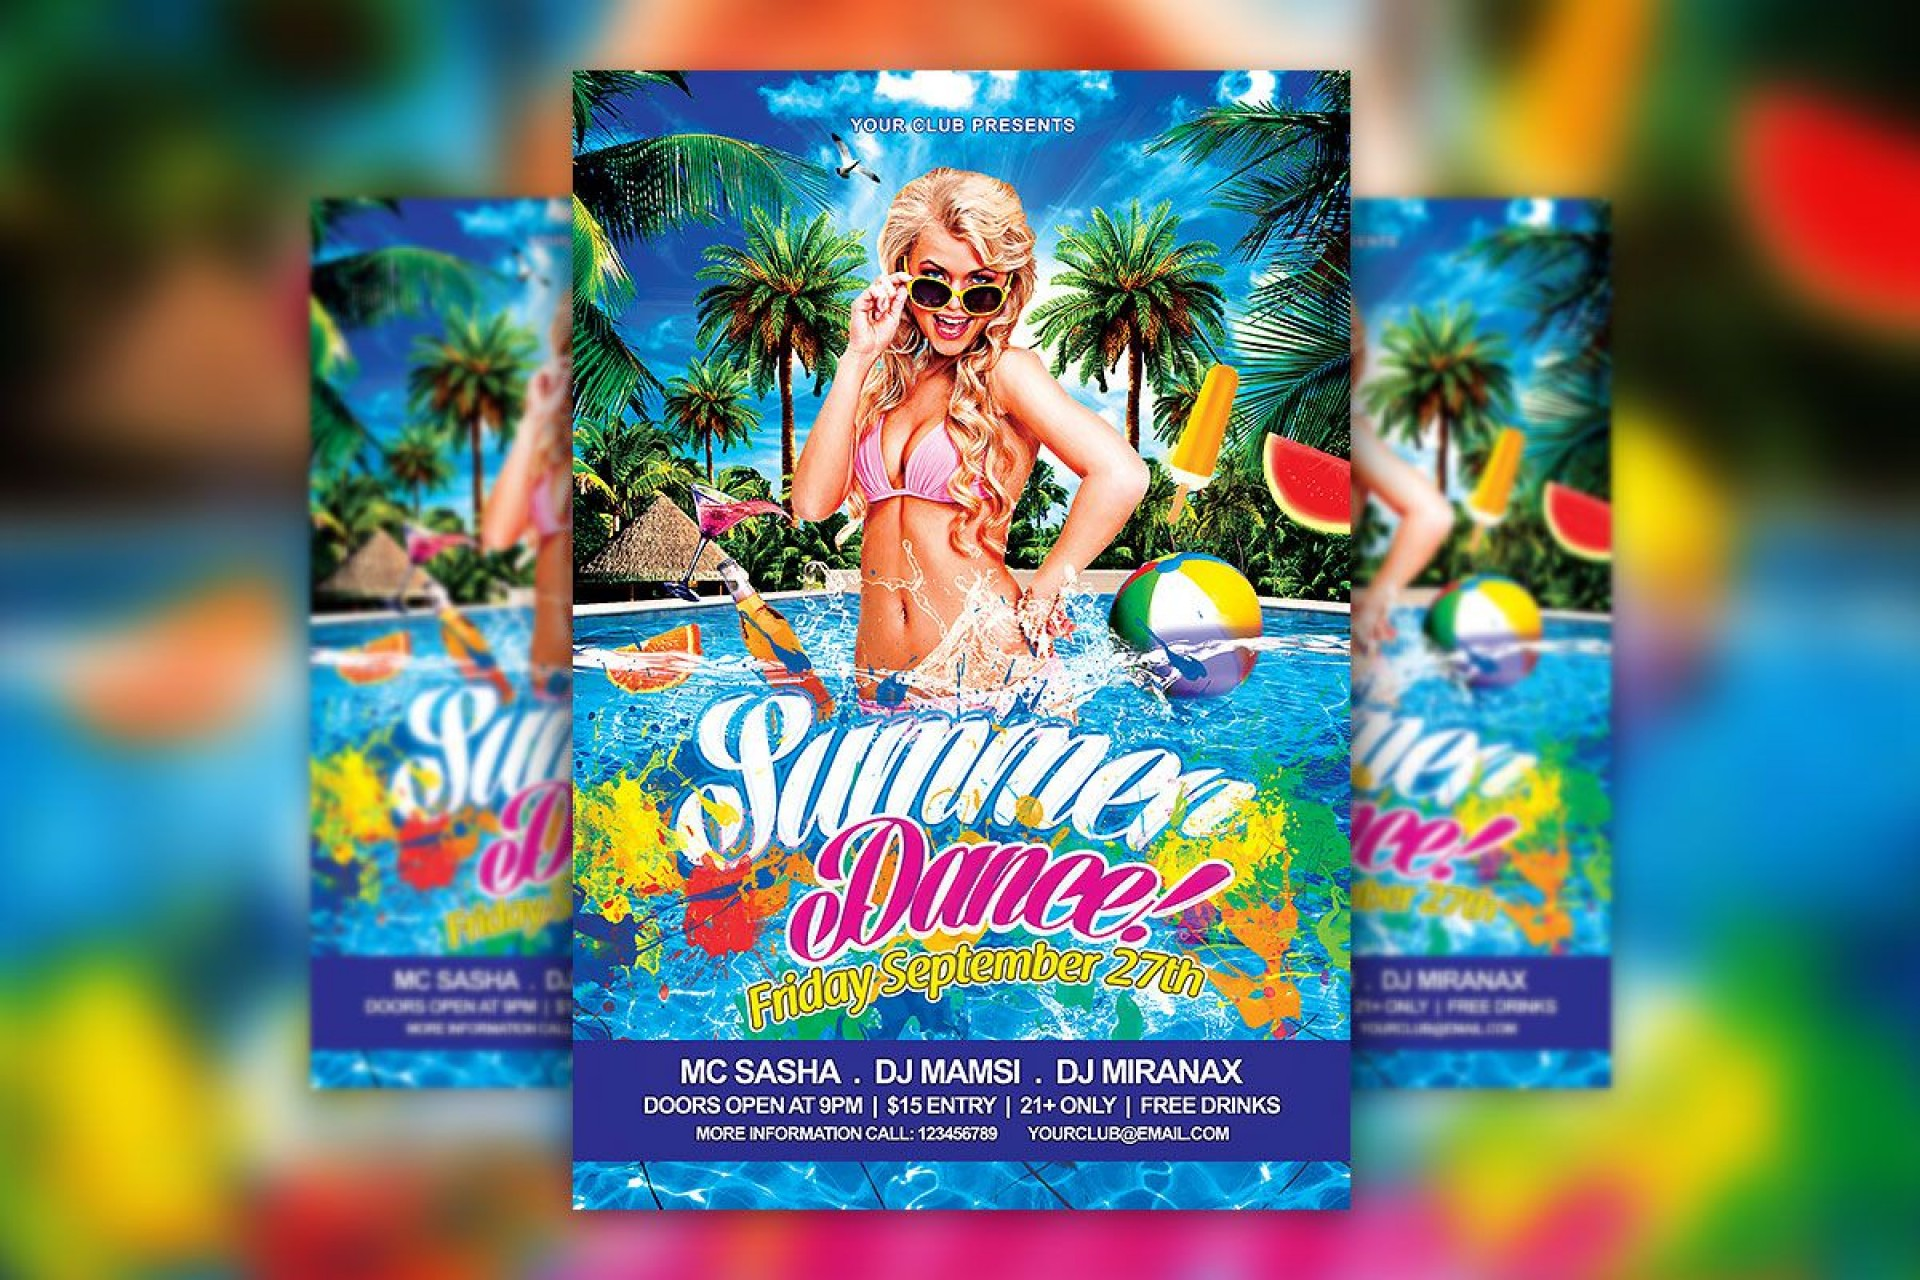 009 Unbelievable Pool Party Flyer Template Free Highest Clarity  Photoshop Psd1920